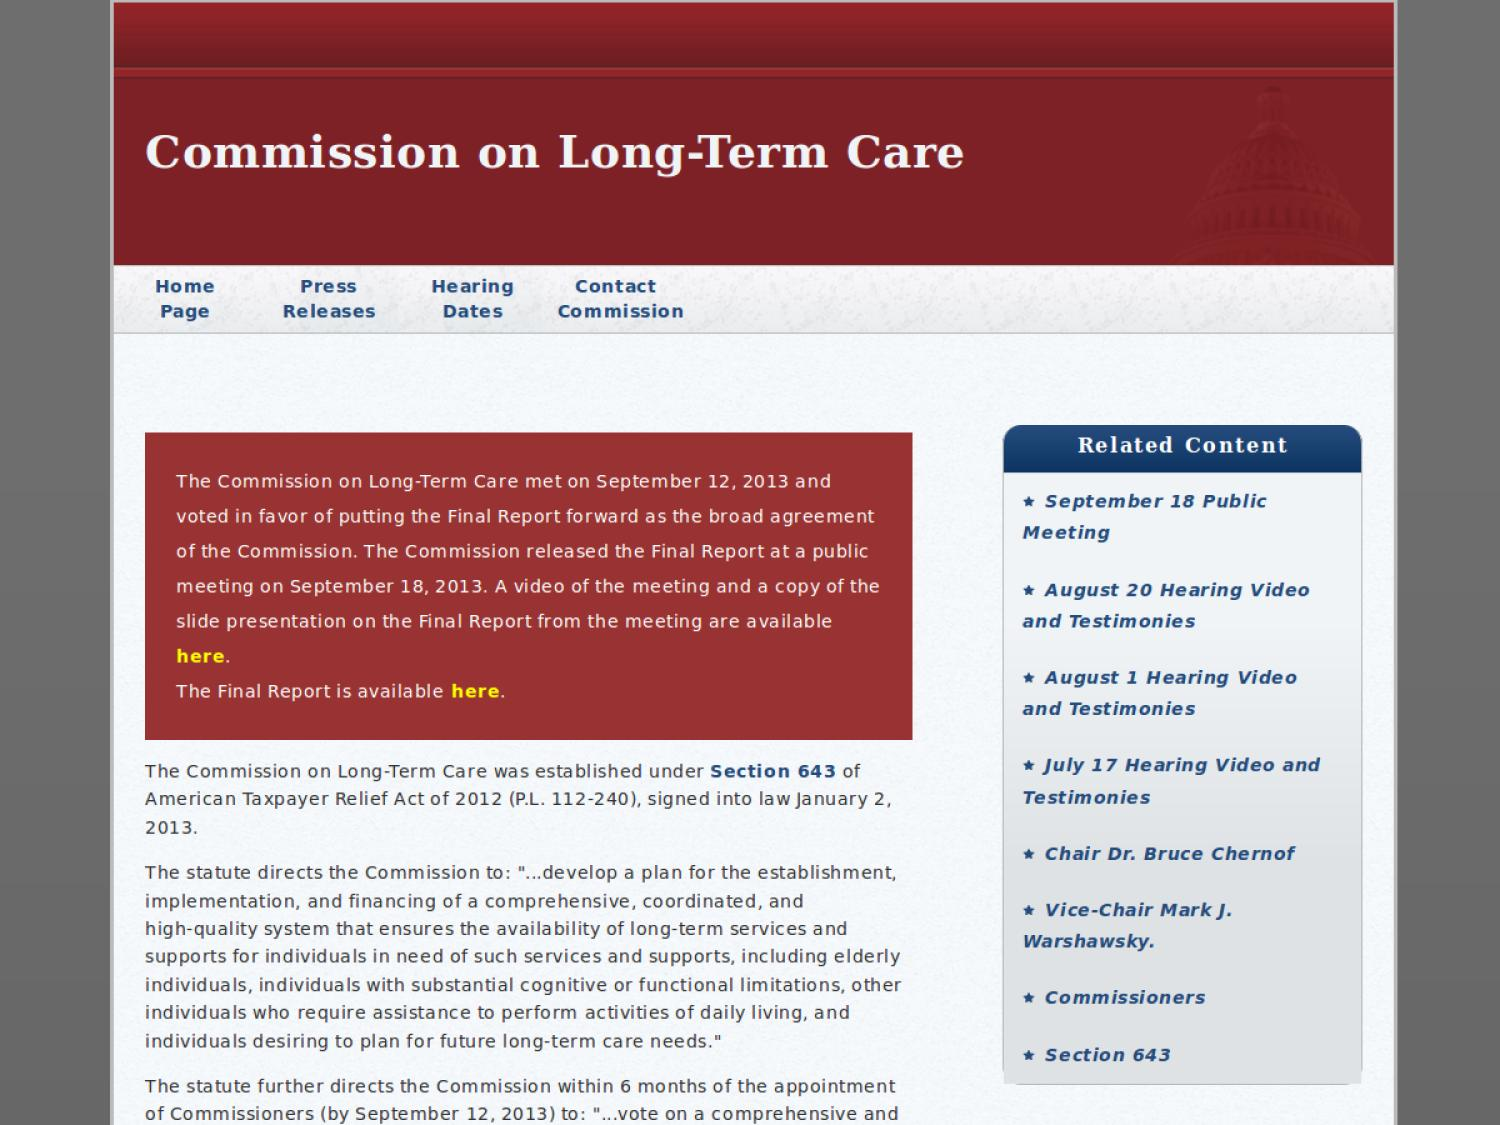 Commission on Long-Term Care                                                                                                      [Sequence #]: 1 of 1